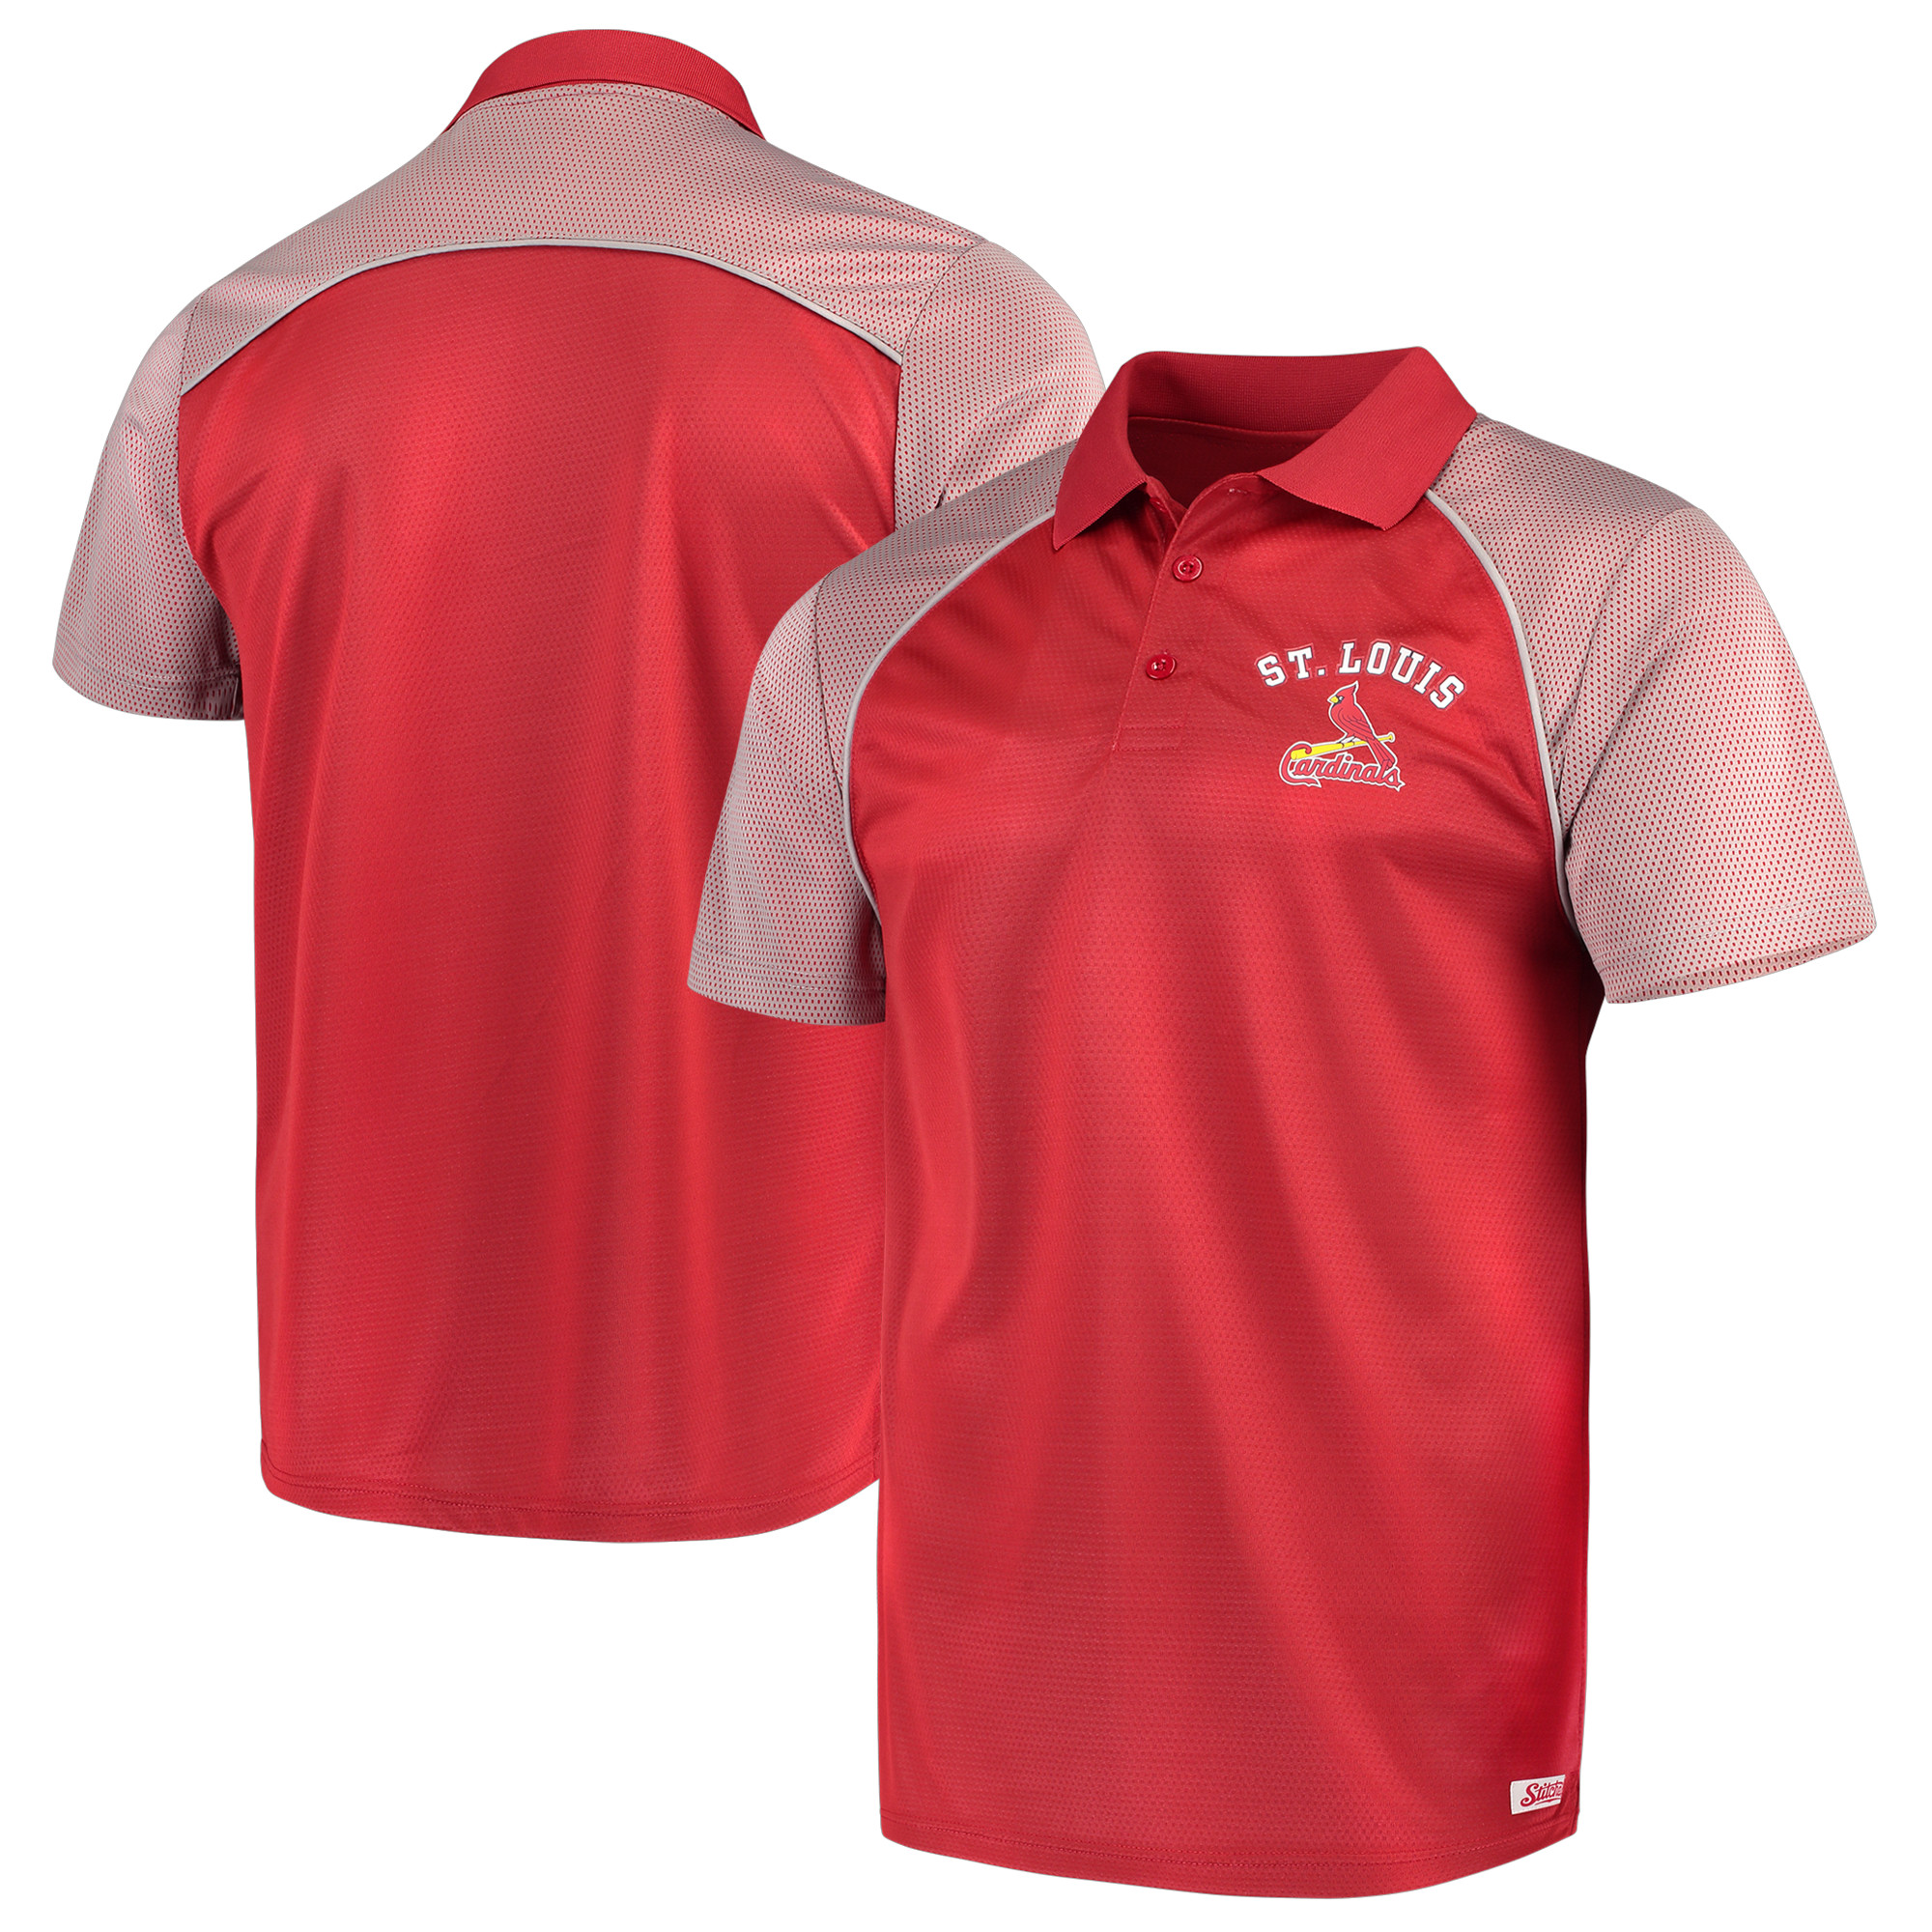 St. Louis Cardinals Stitches Domestic Polo - Red